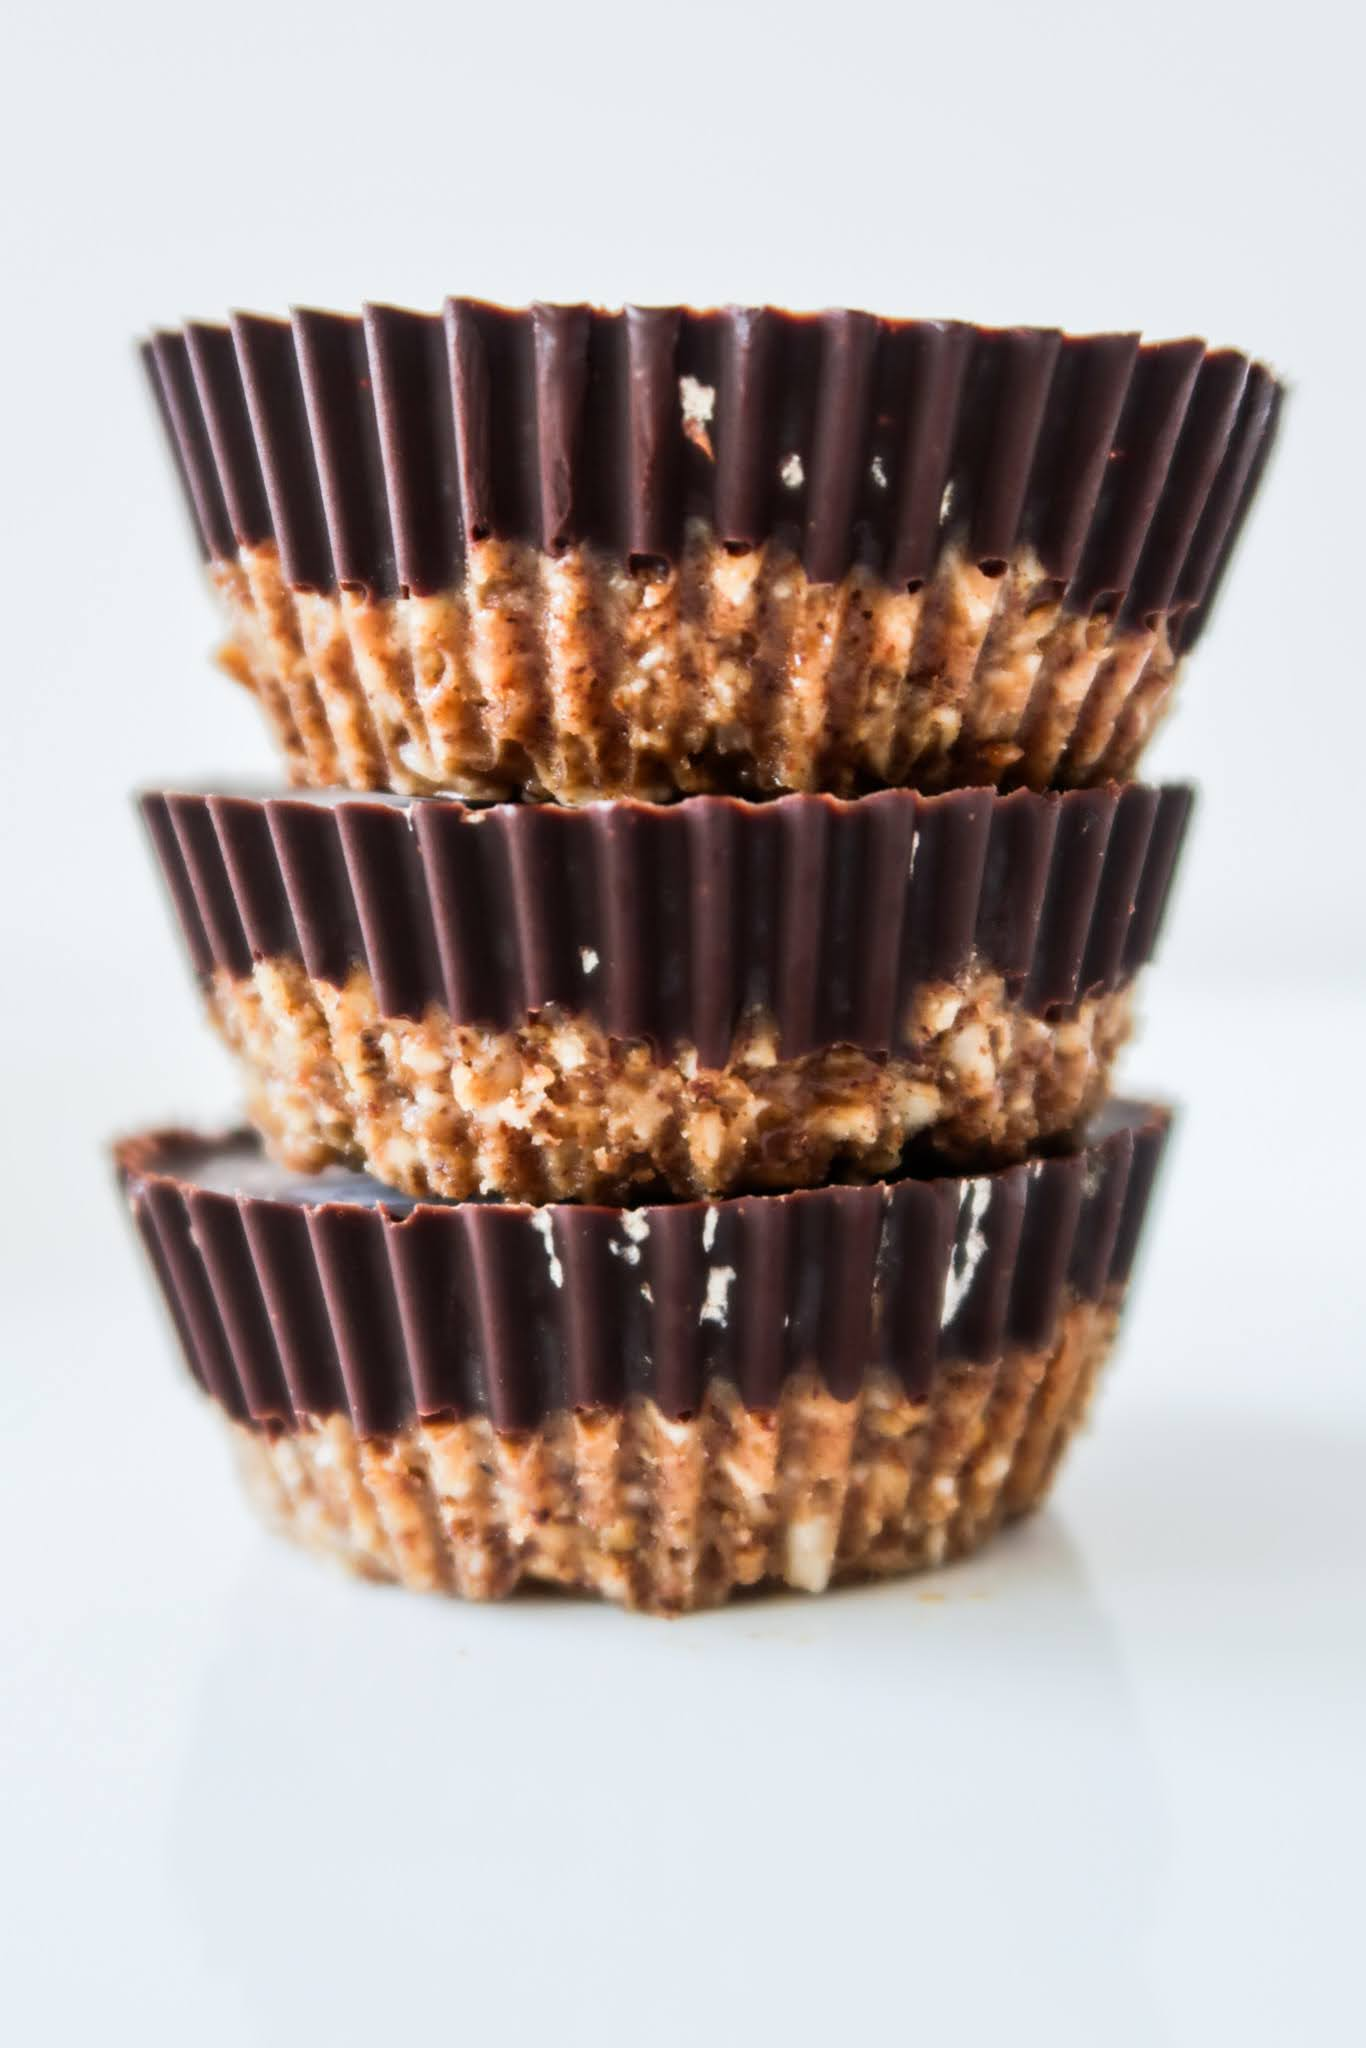 peanut butter chocolate cups breakfast